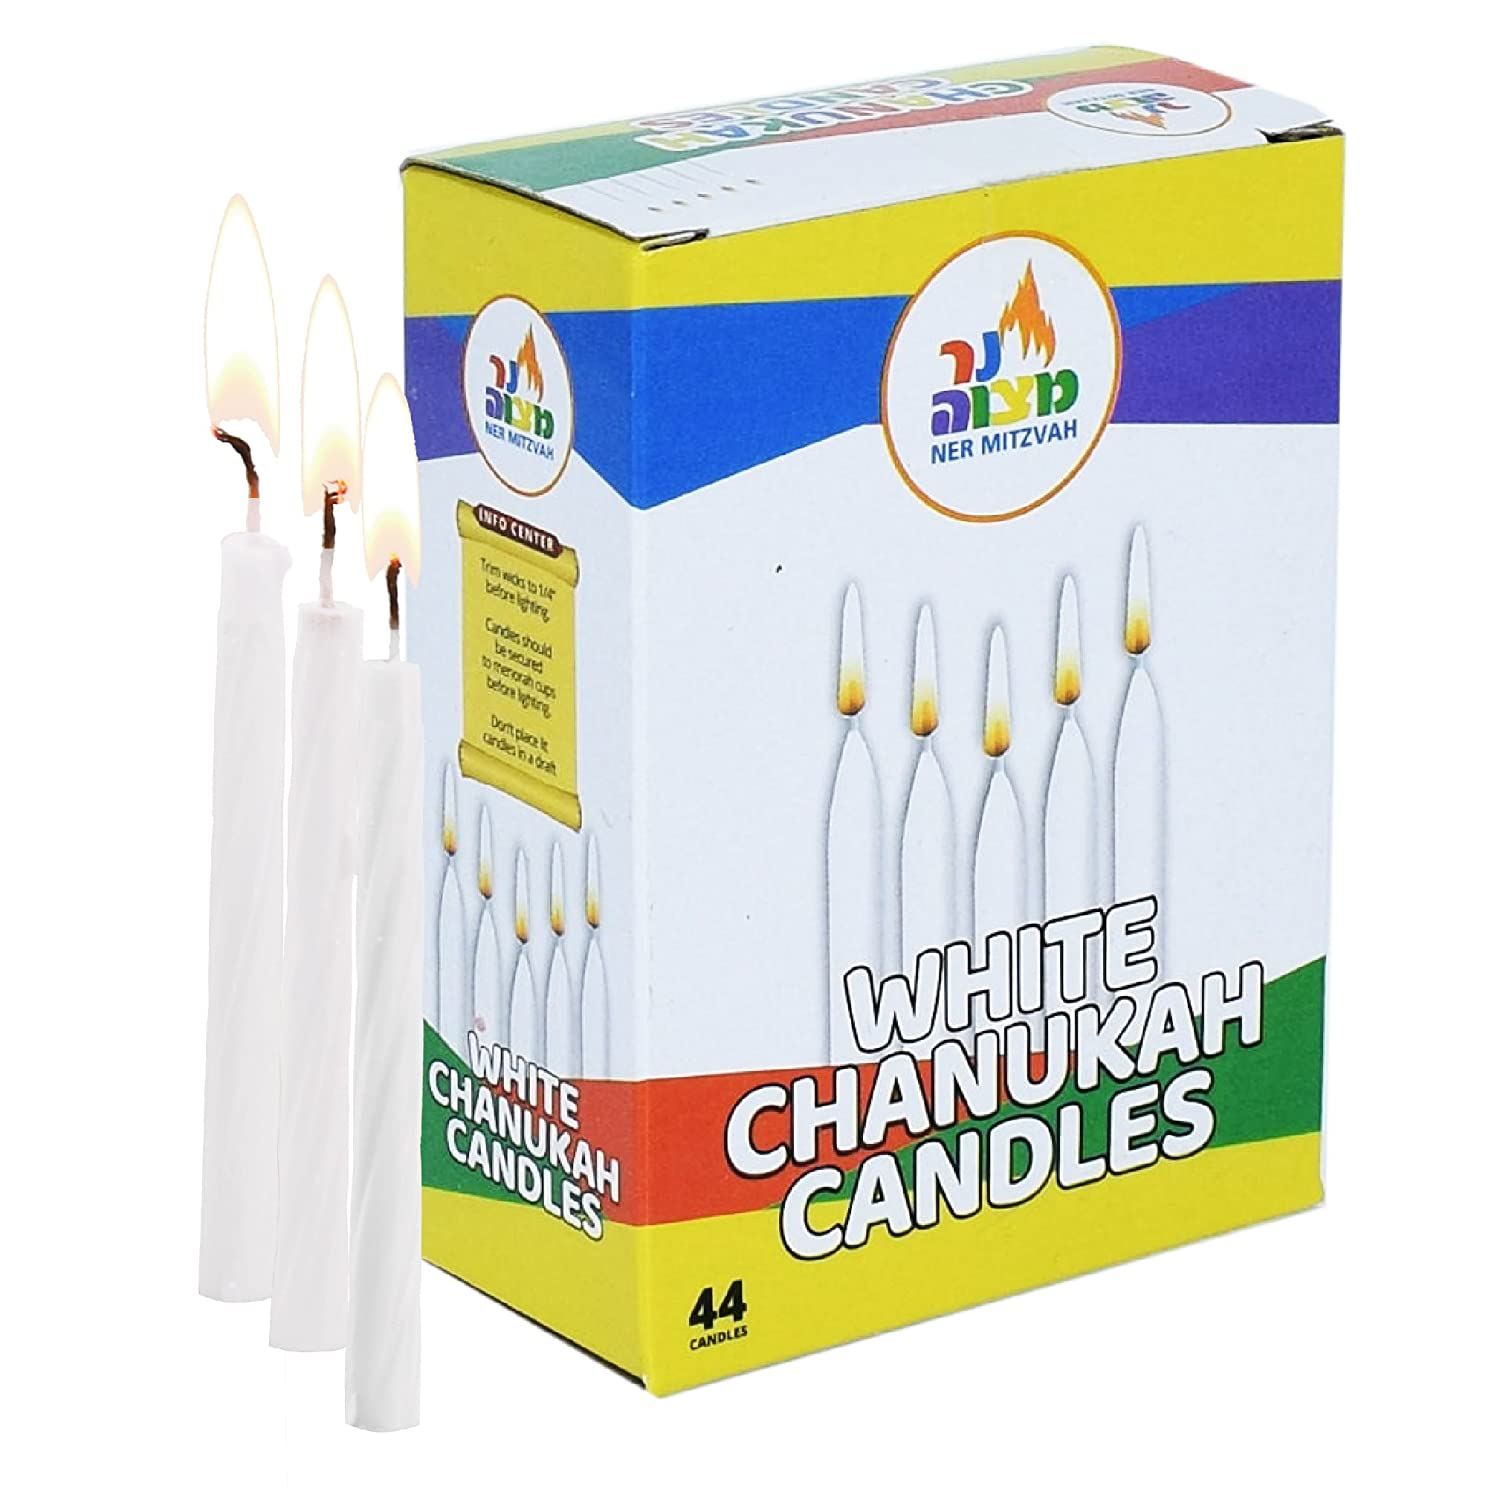 Ner Mitzvah White Chanukah Candles - Standard Size Fits Most Menorahs - Premium Quality Wax - 44 Count for All 8 Nights of Hanukkah AX-AY-ABHI-66345